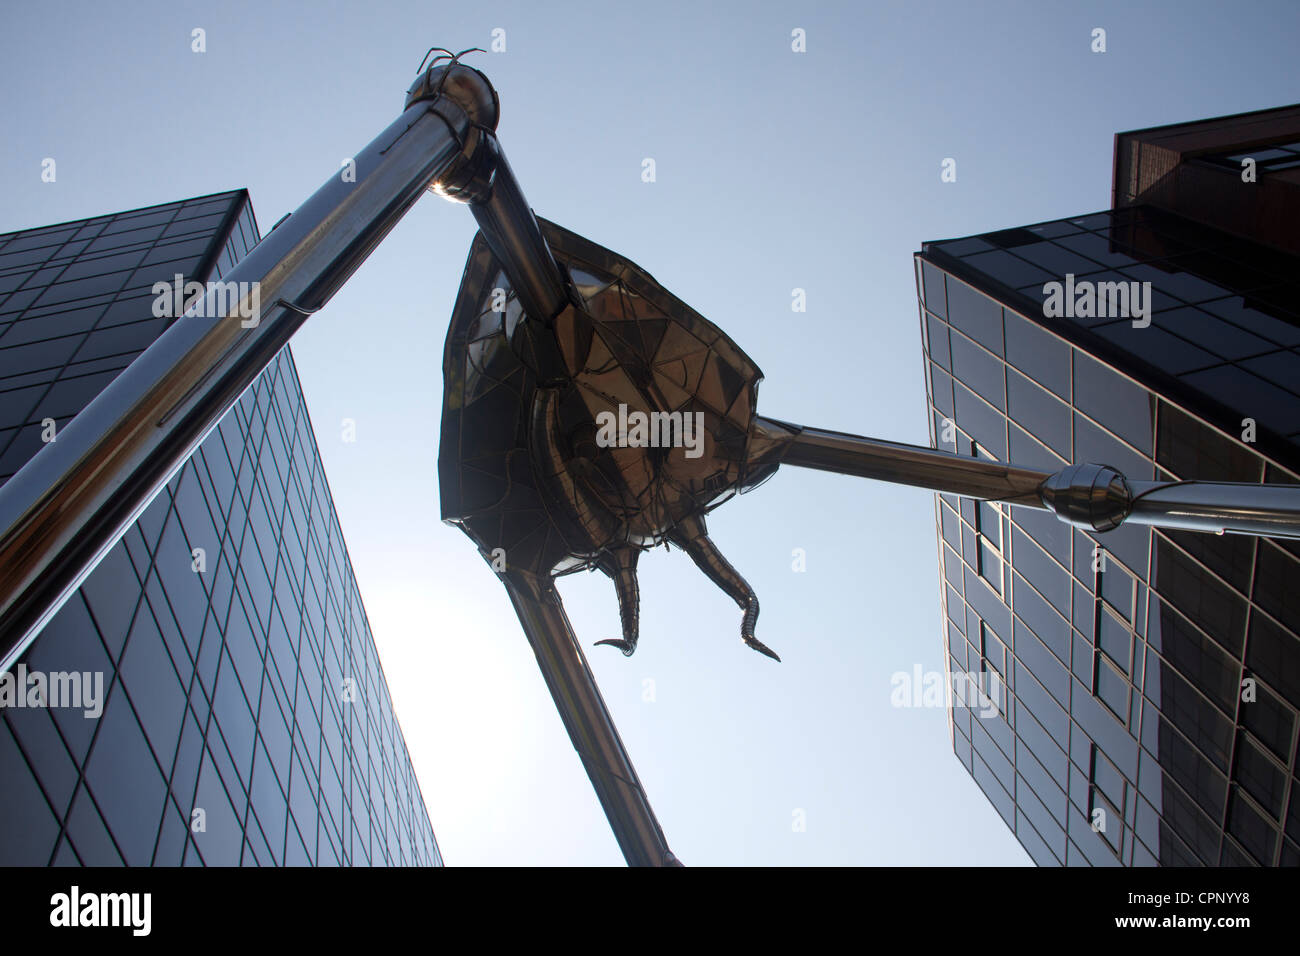 The Woking Martian Tripod.  H G Wells War of the Worlds creation brought to life by Michael Condron. - Stock Image